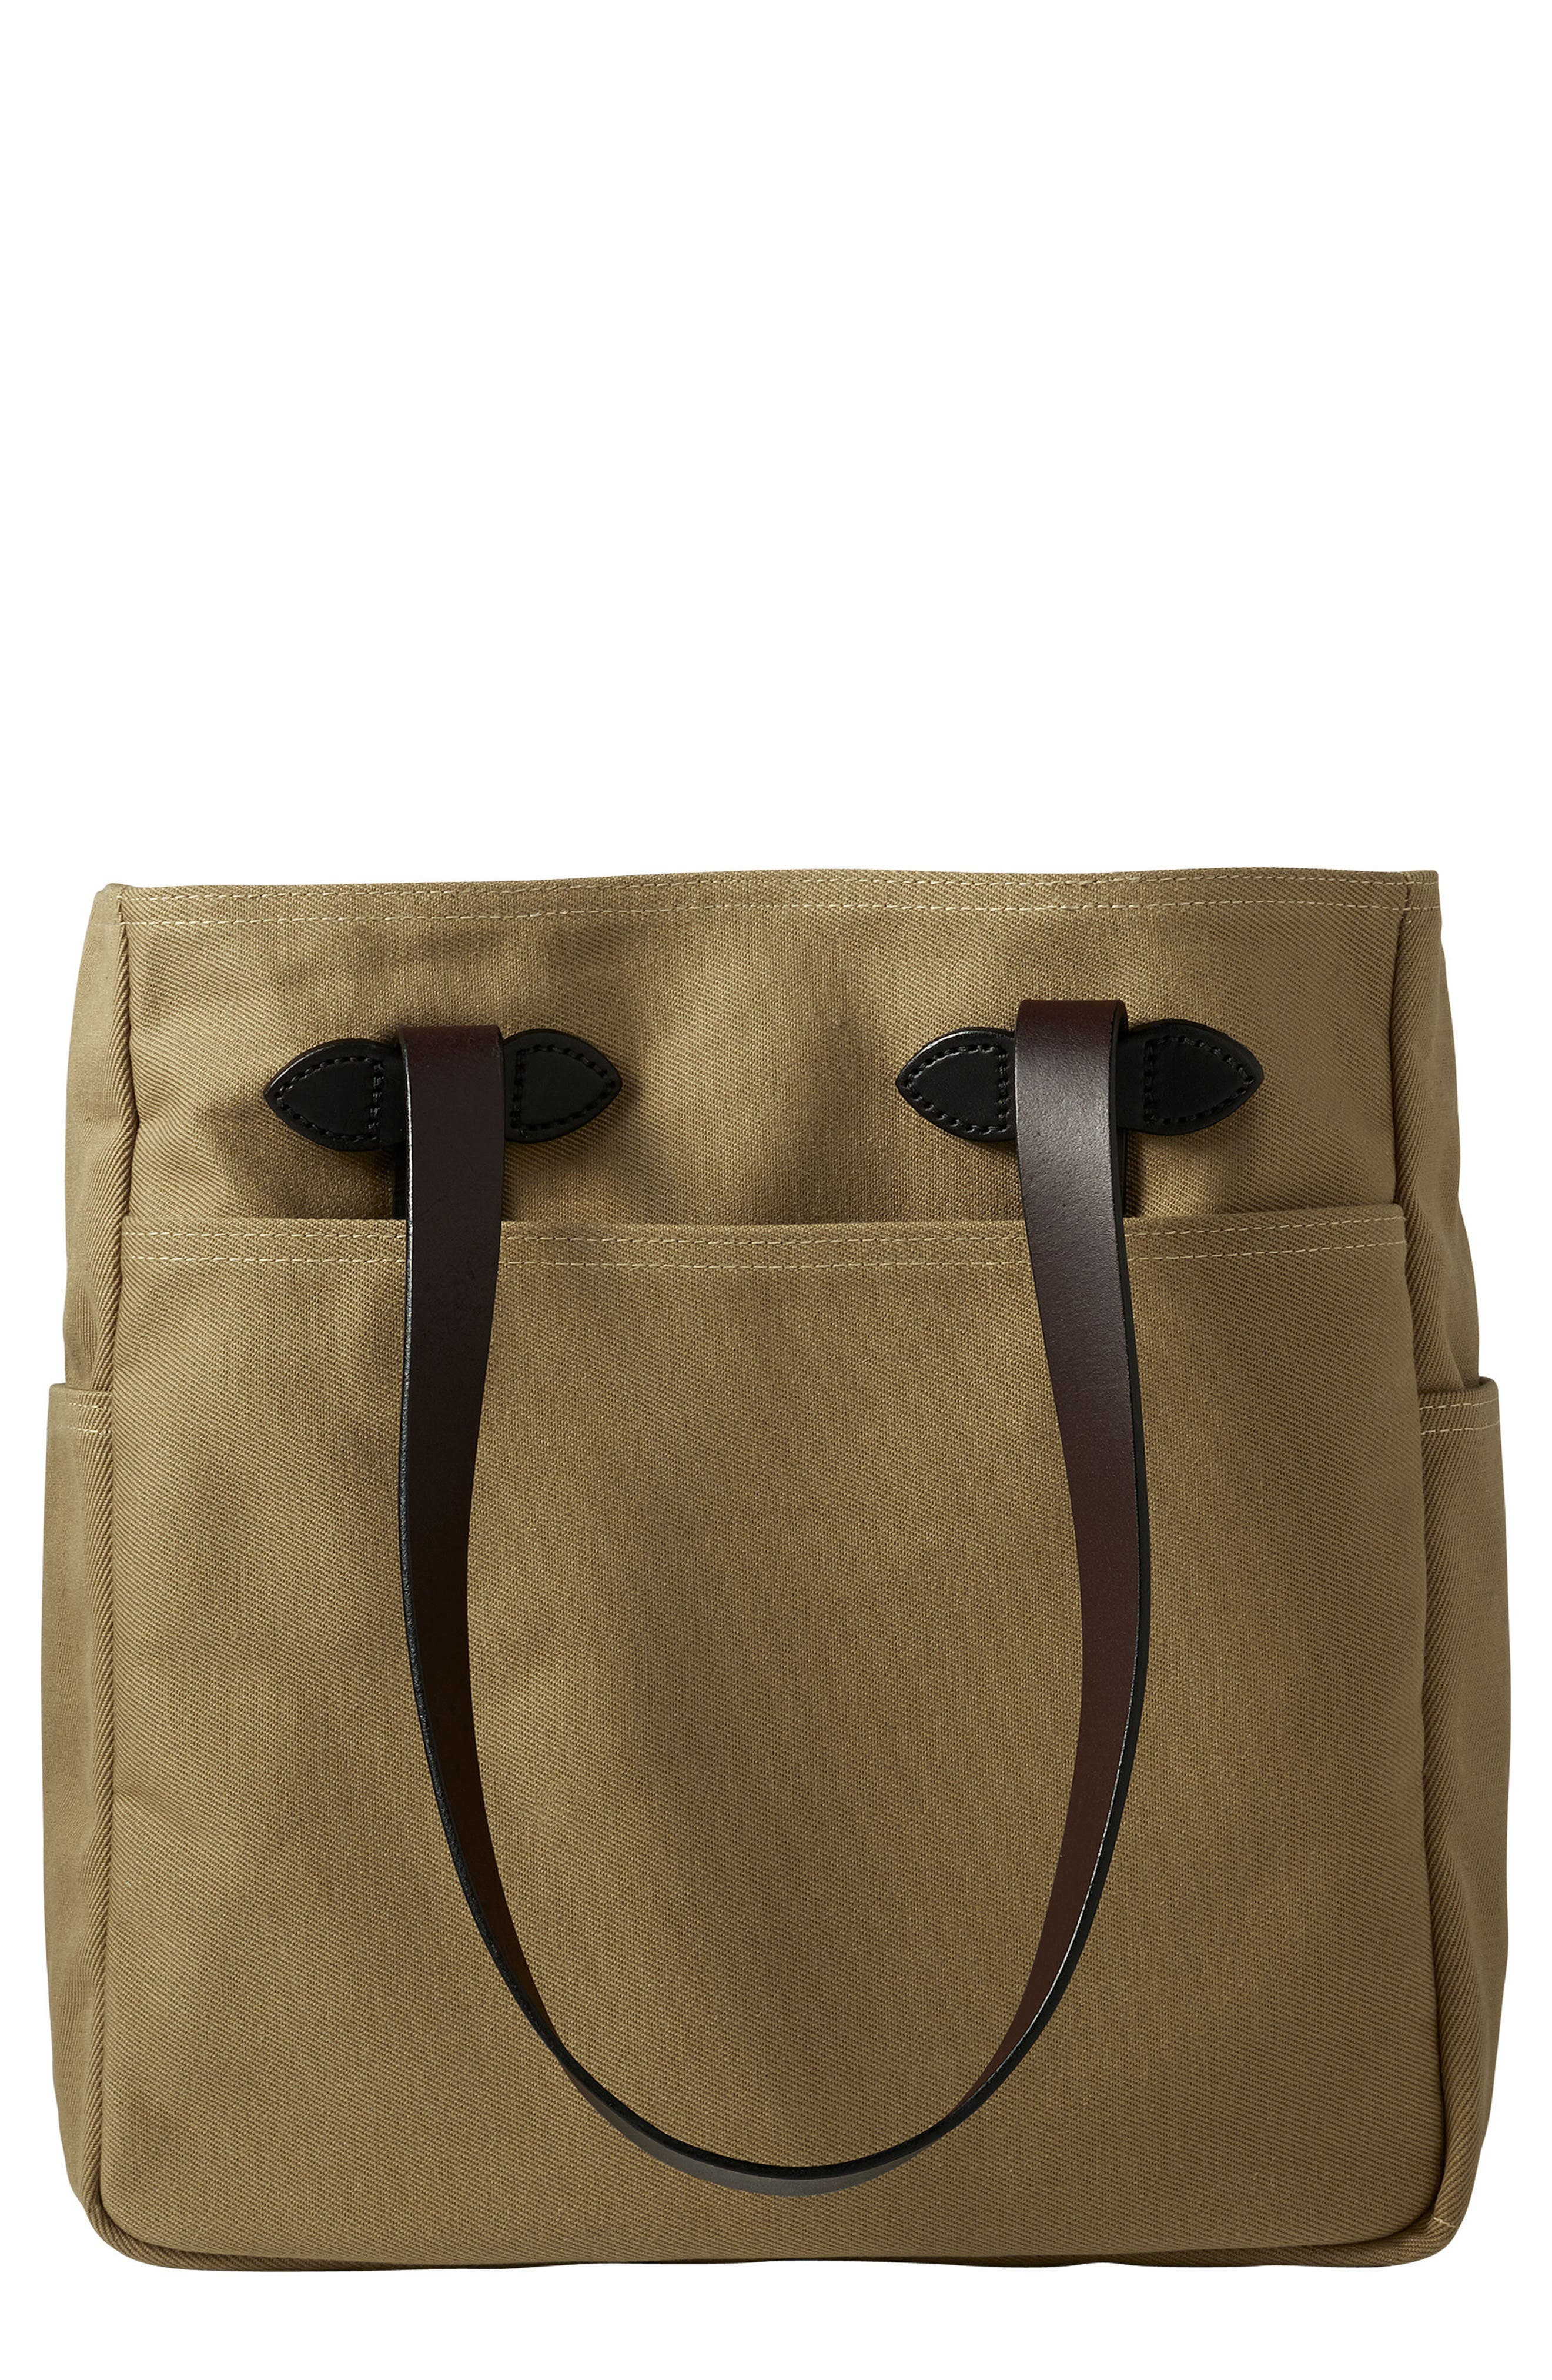 Rugged Twill Tote Bag,                             Main thumbnail 1, color,                             Tan